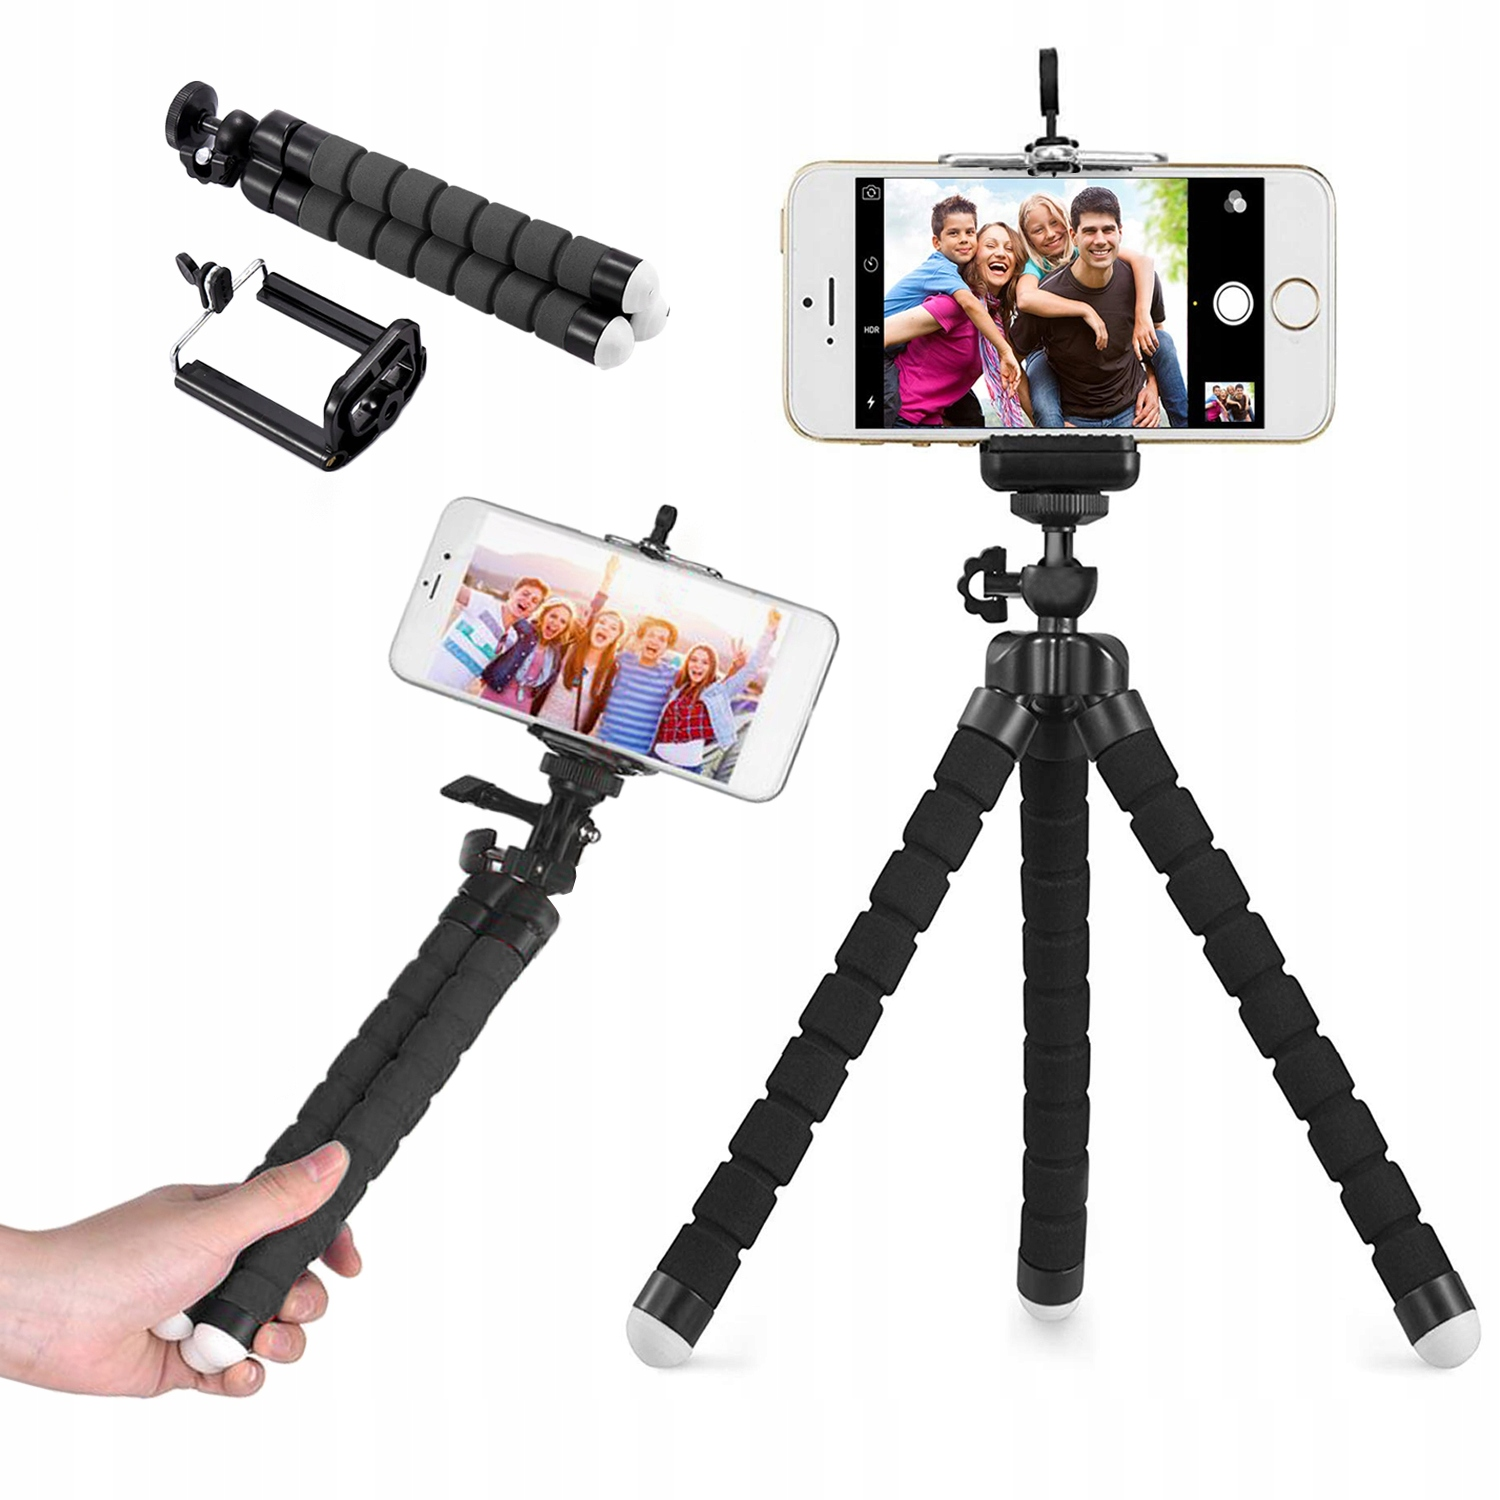 Item THE SELFIE STICK TRIPOD TRIPOD HOLDER PHONE